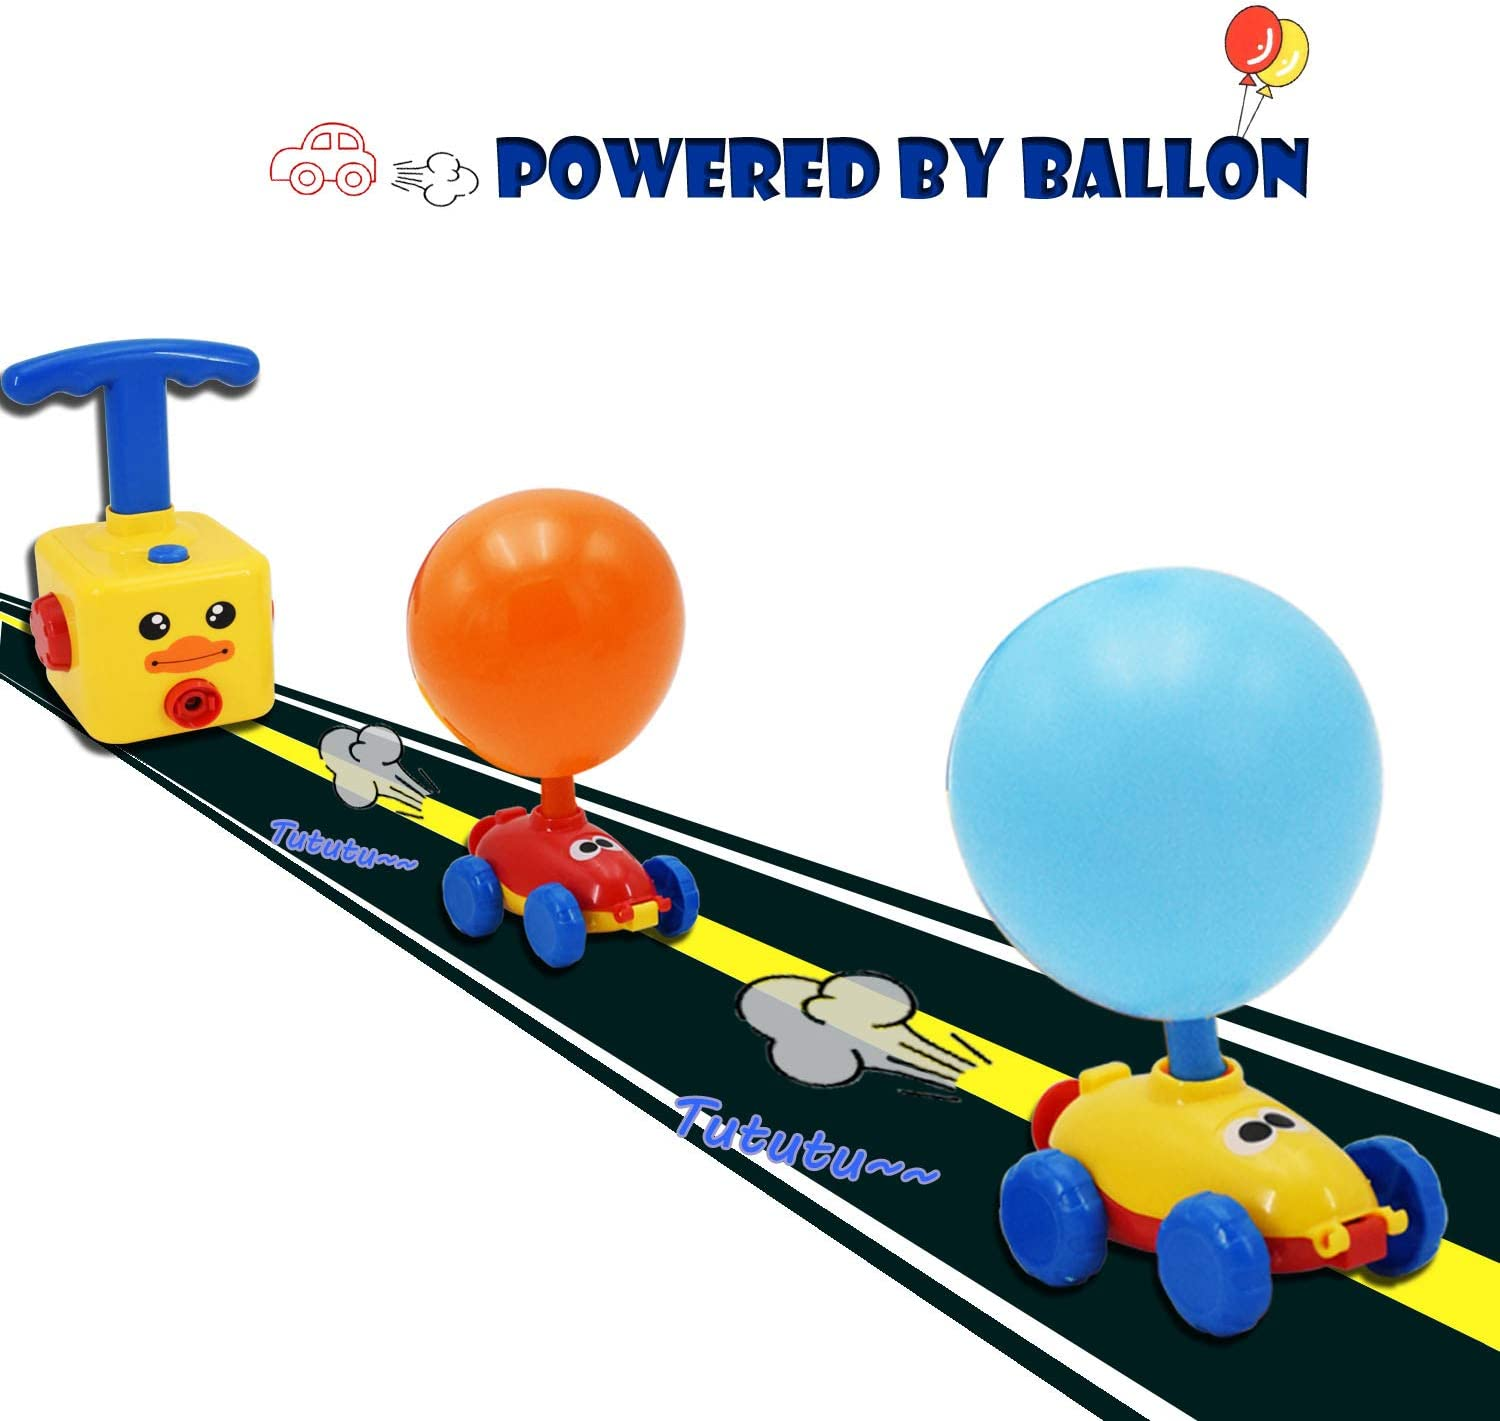 2Racers Cars 12Balloons Preschool Educational STEM Toys for Boys and Girls over 3+ Hedgbobo Balloon-Powered Car with a Manual Balloon Pump